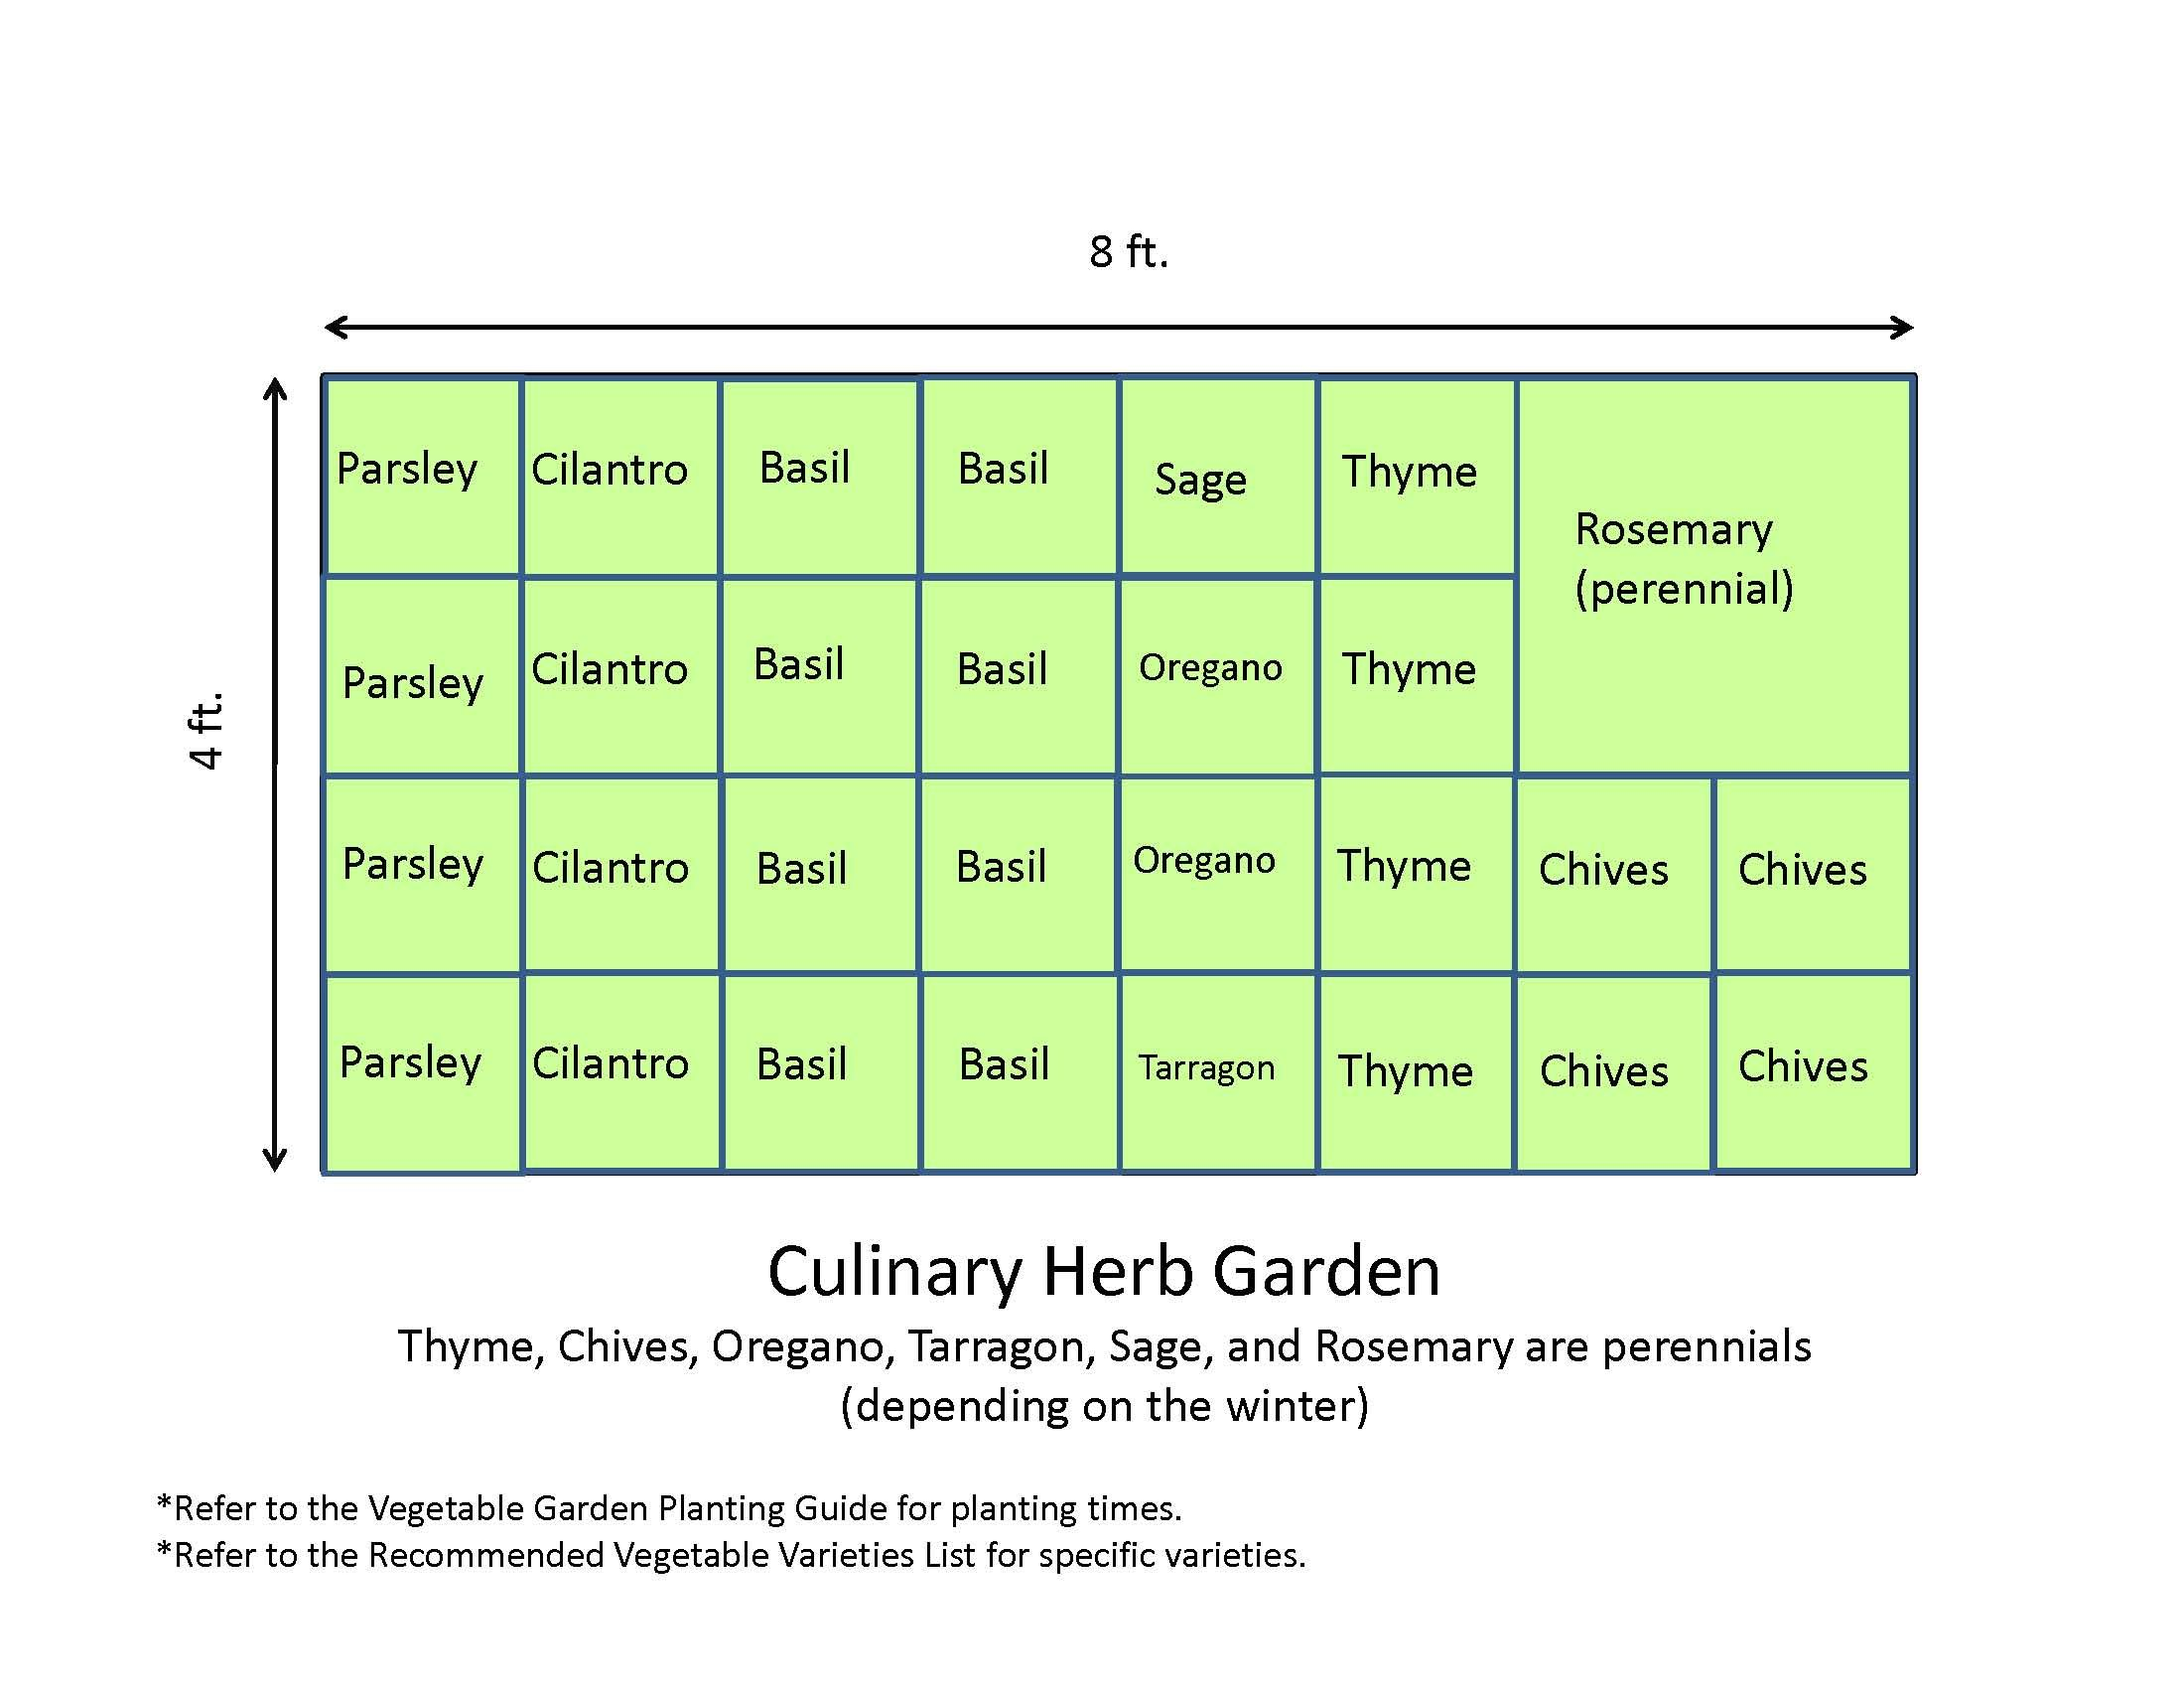 Garden And Patio 4x8 Culinary Herb Garden Layout Plans Ideas For